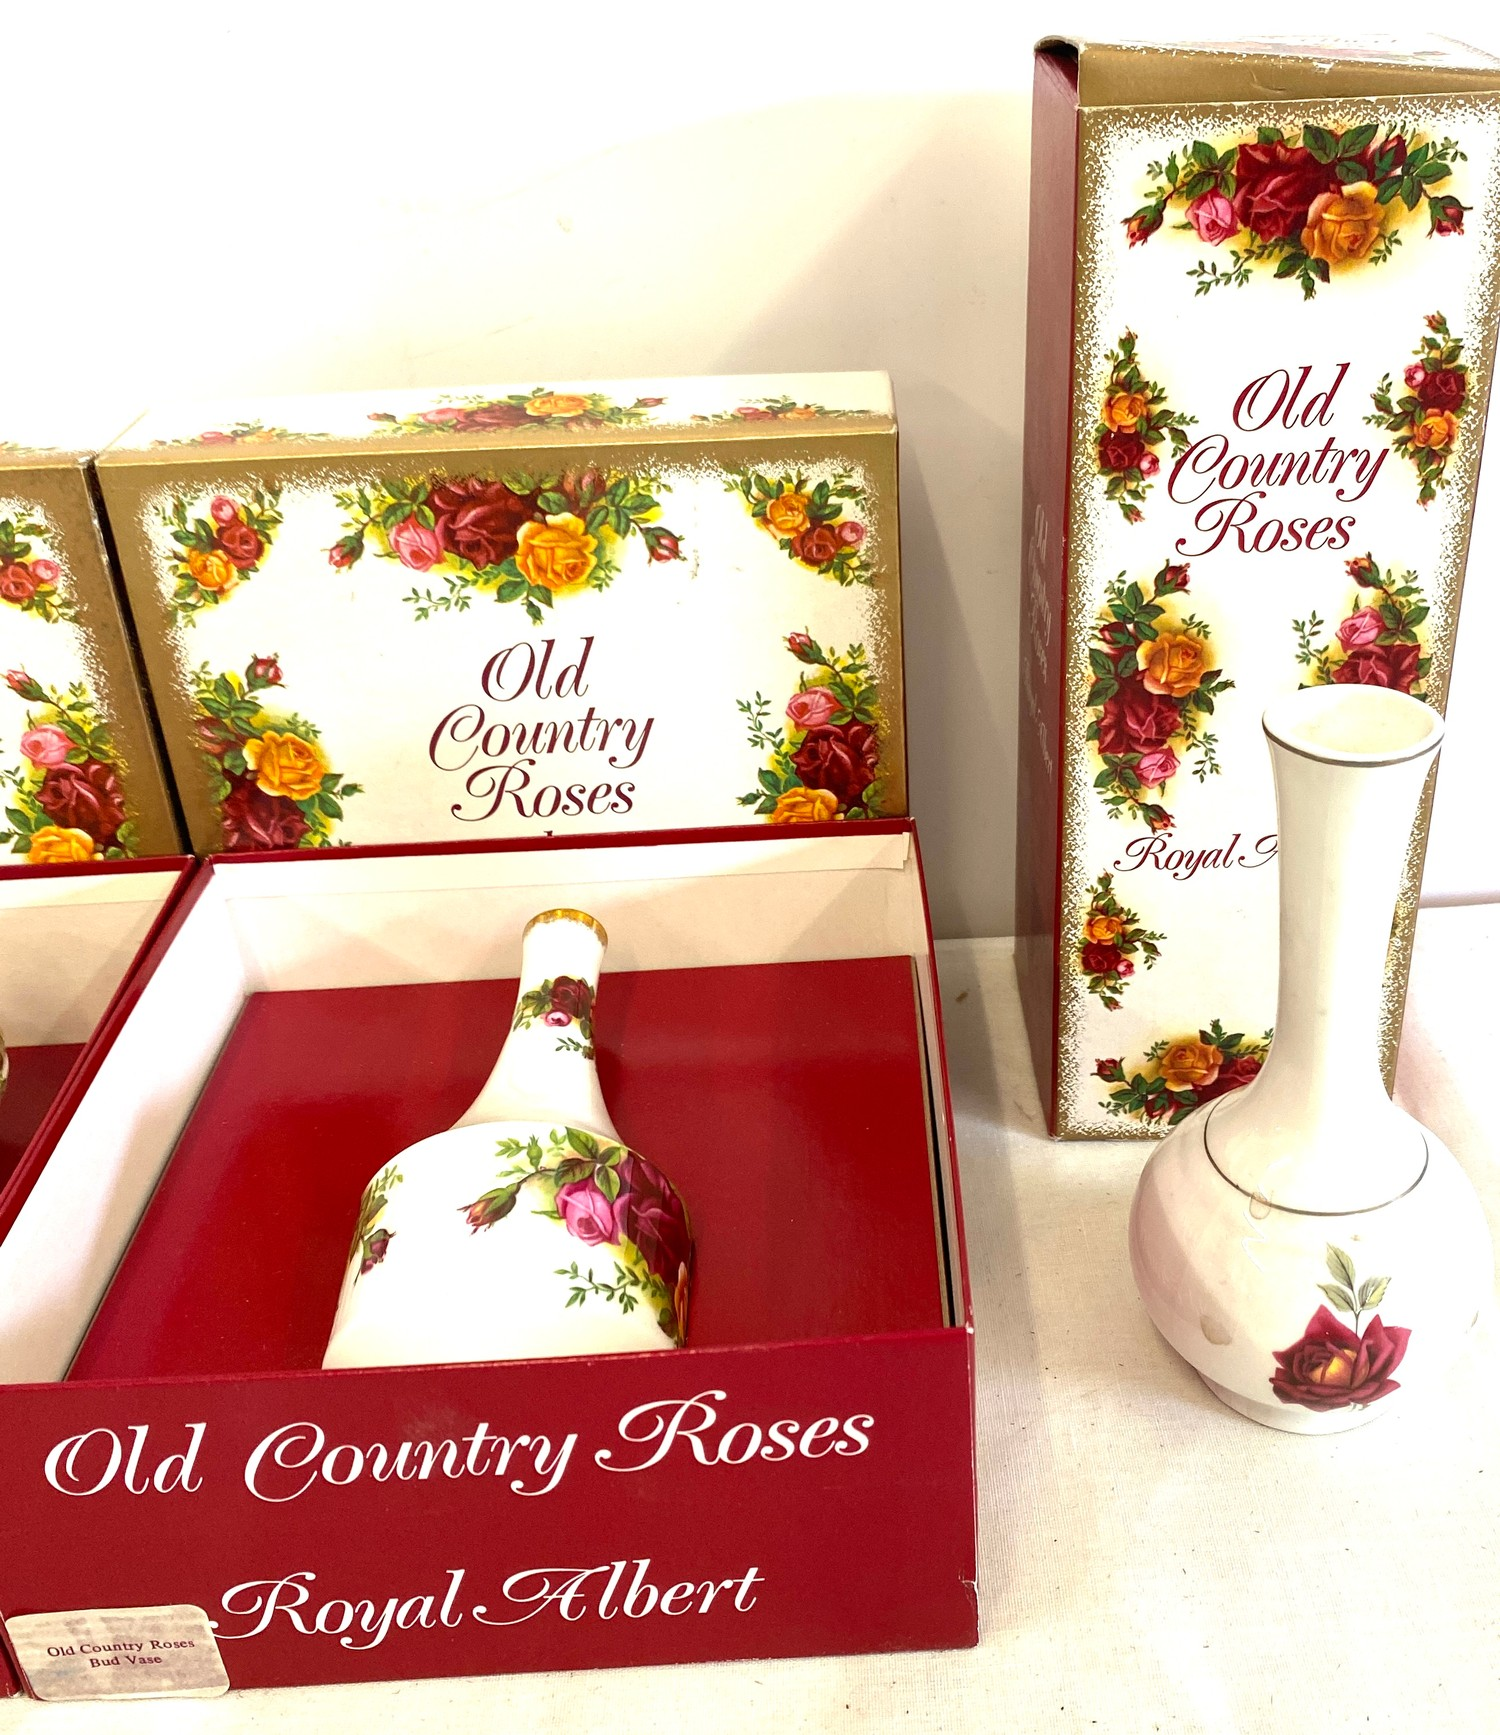 3 Boxed Royal Albert Old Country Roses pottery pieces includes vases etc - Image 4 of 4